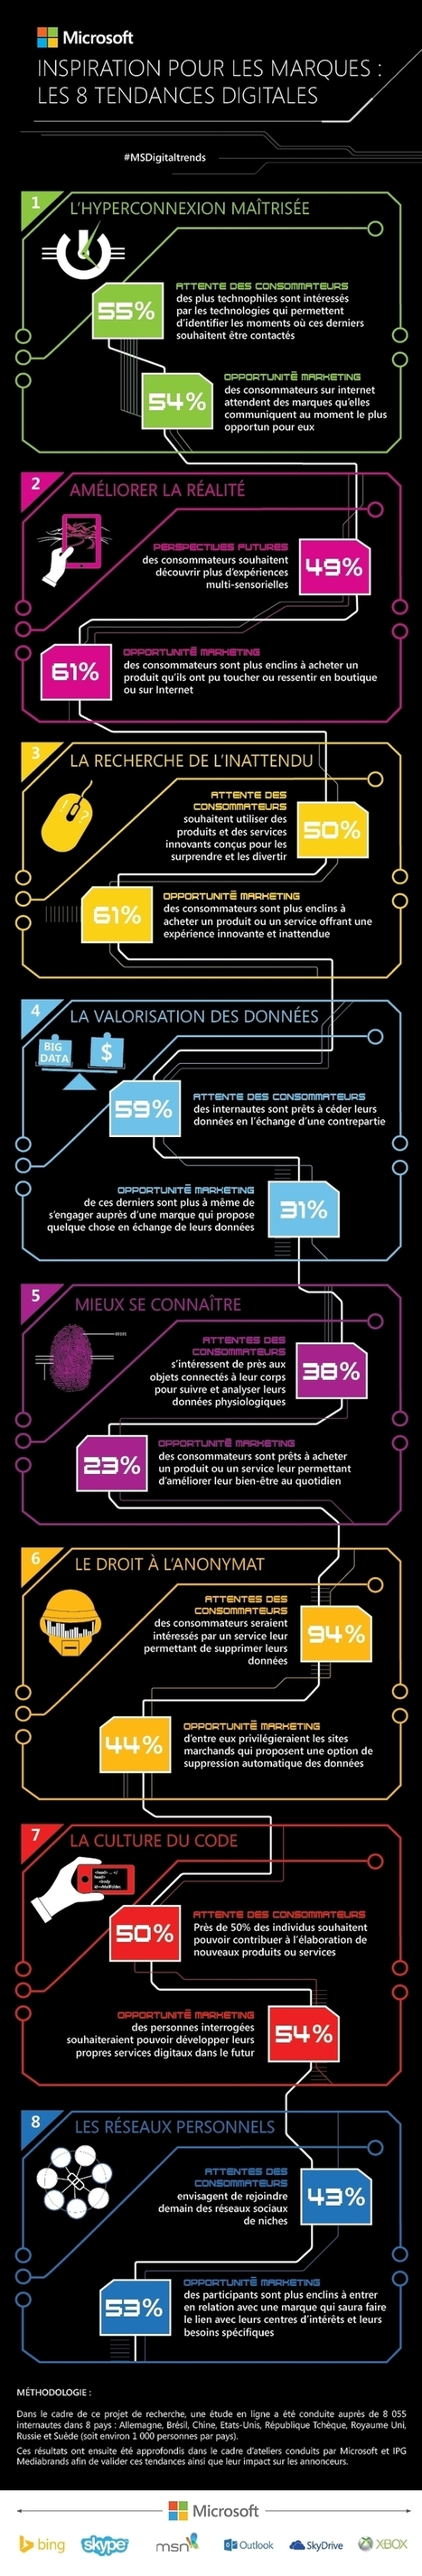 Infographie | 8 inspirations digitales pour les marques en 2014 | Stratégie marketing | Scoop.it